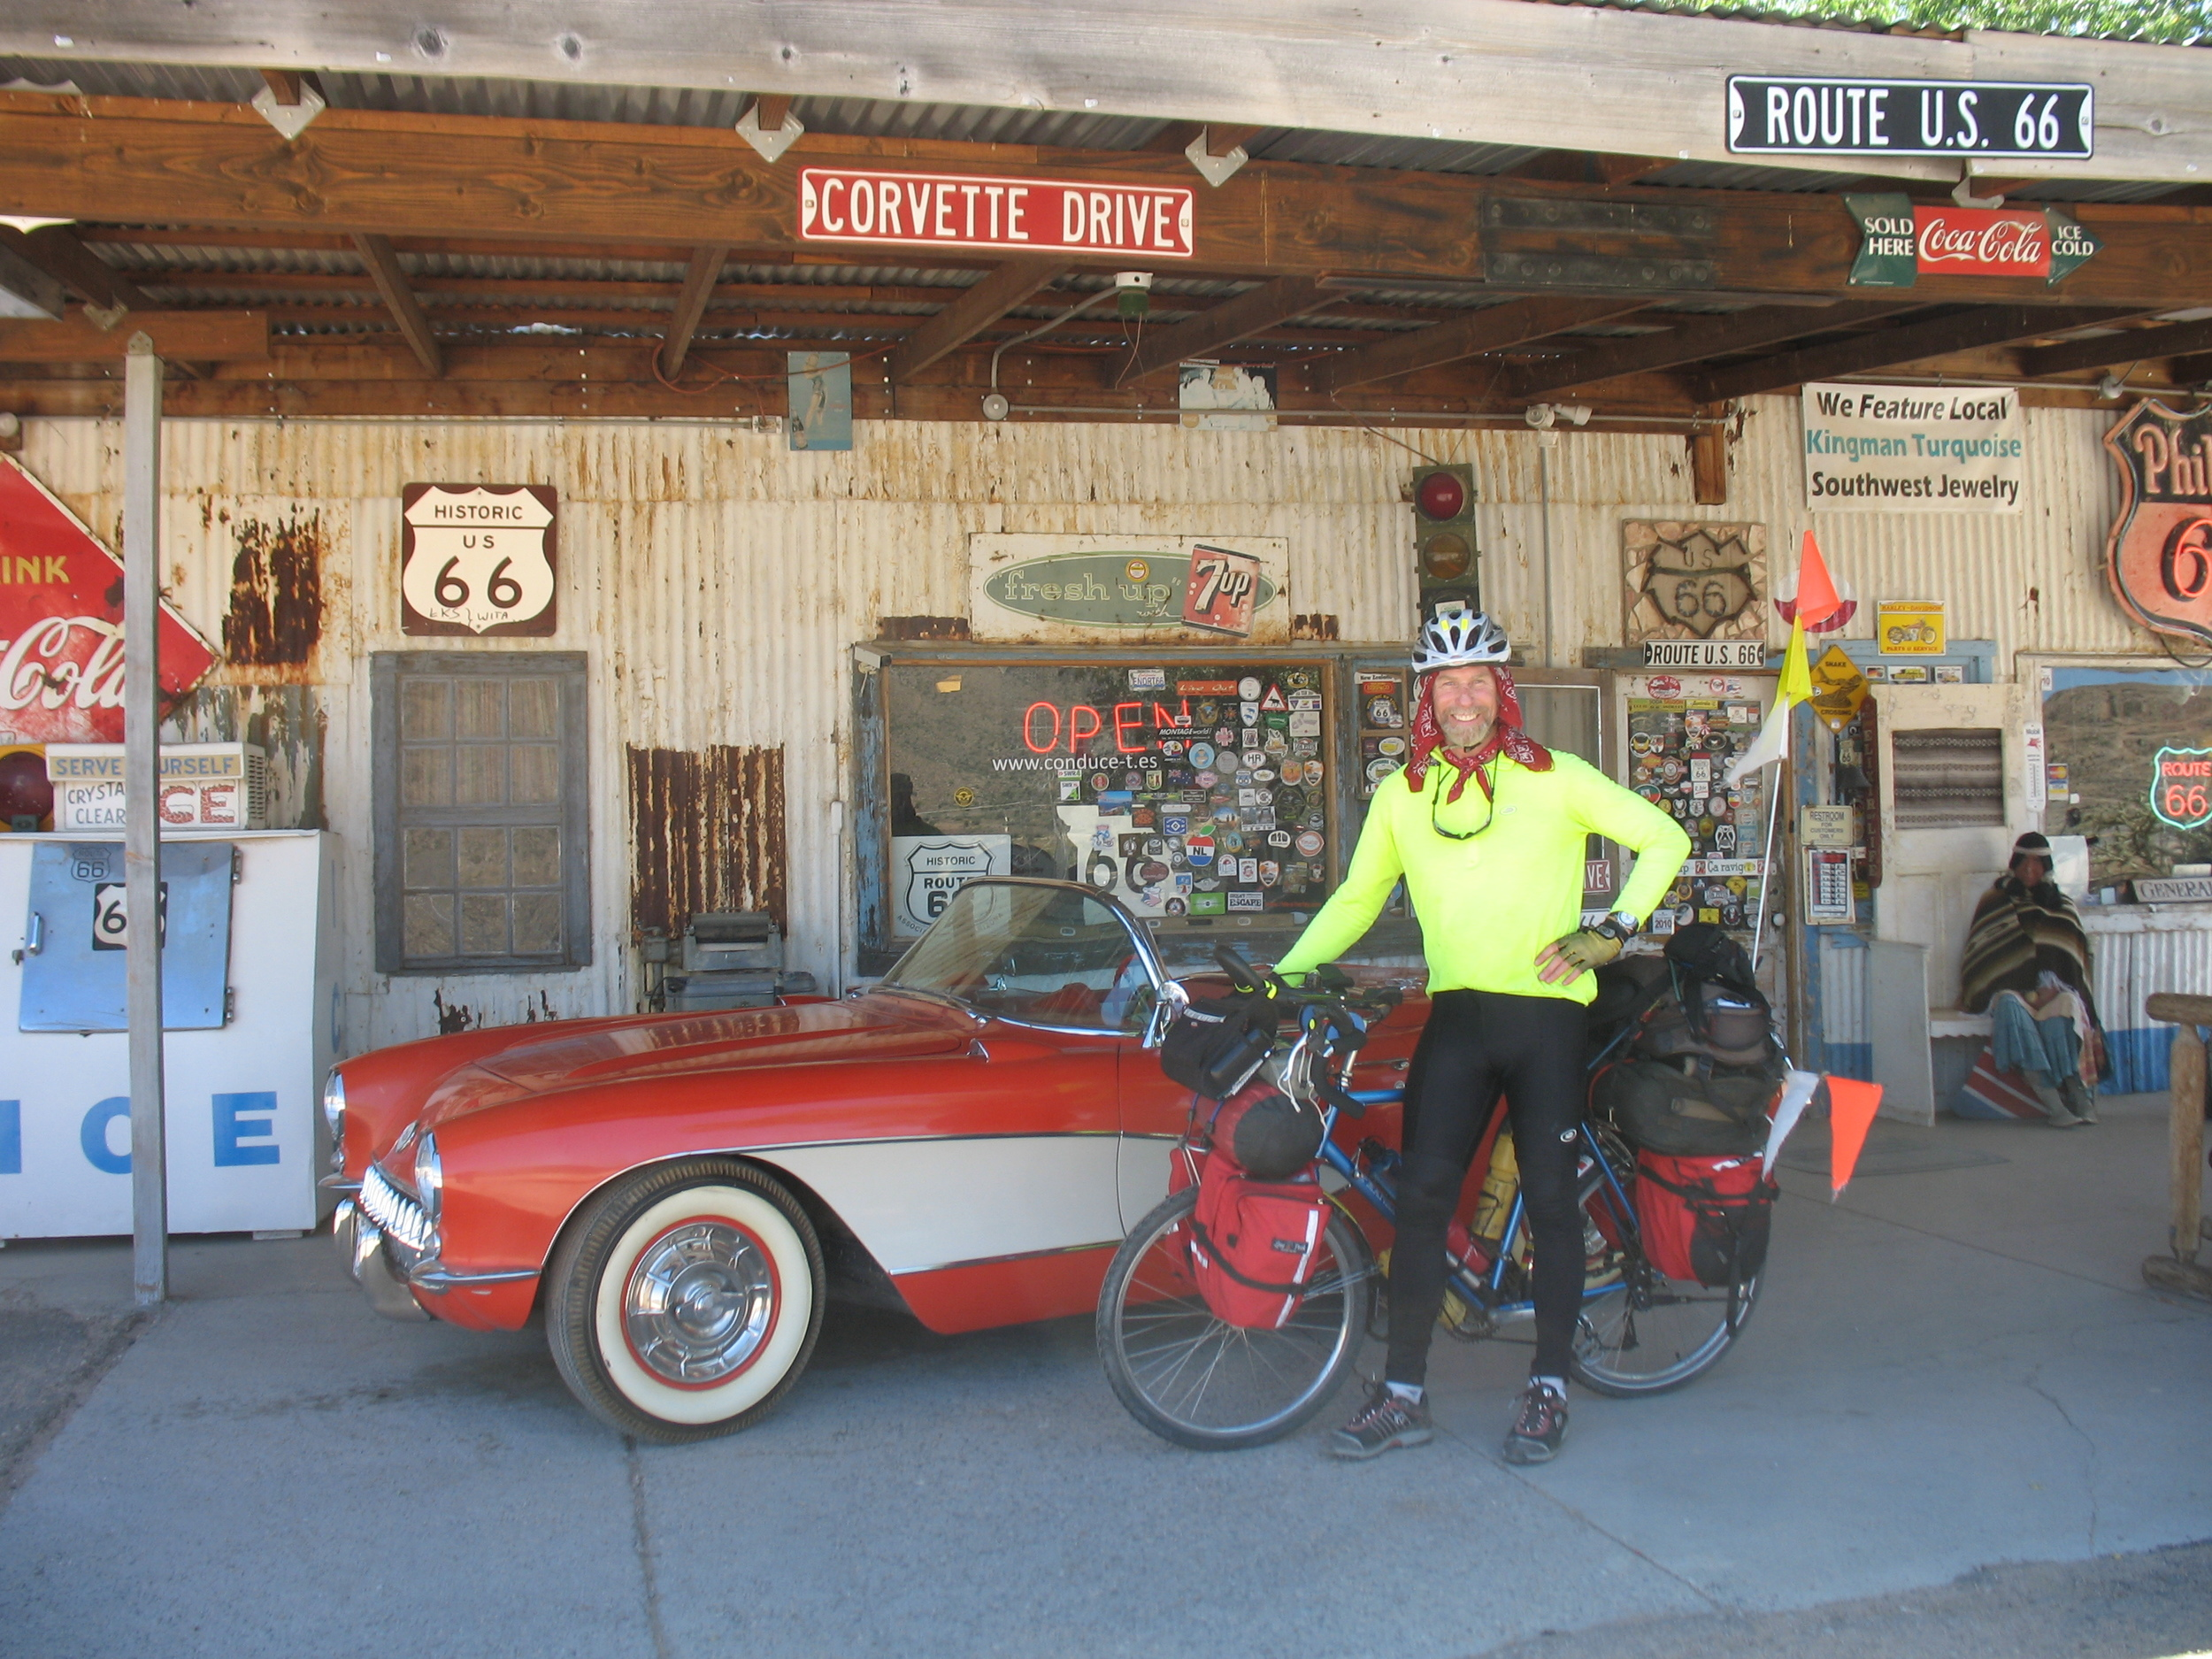 Coast to Coast Across America - Travels with Condor along Route 66